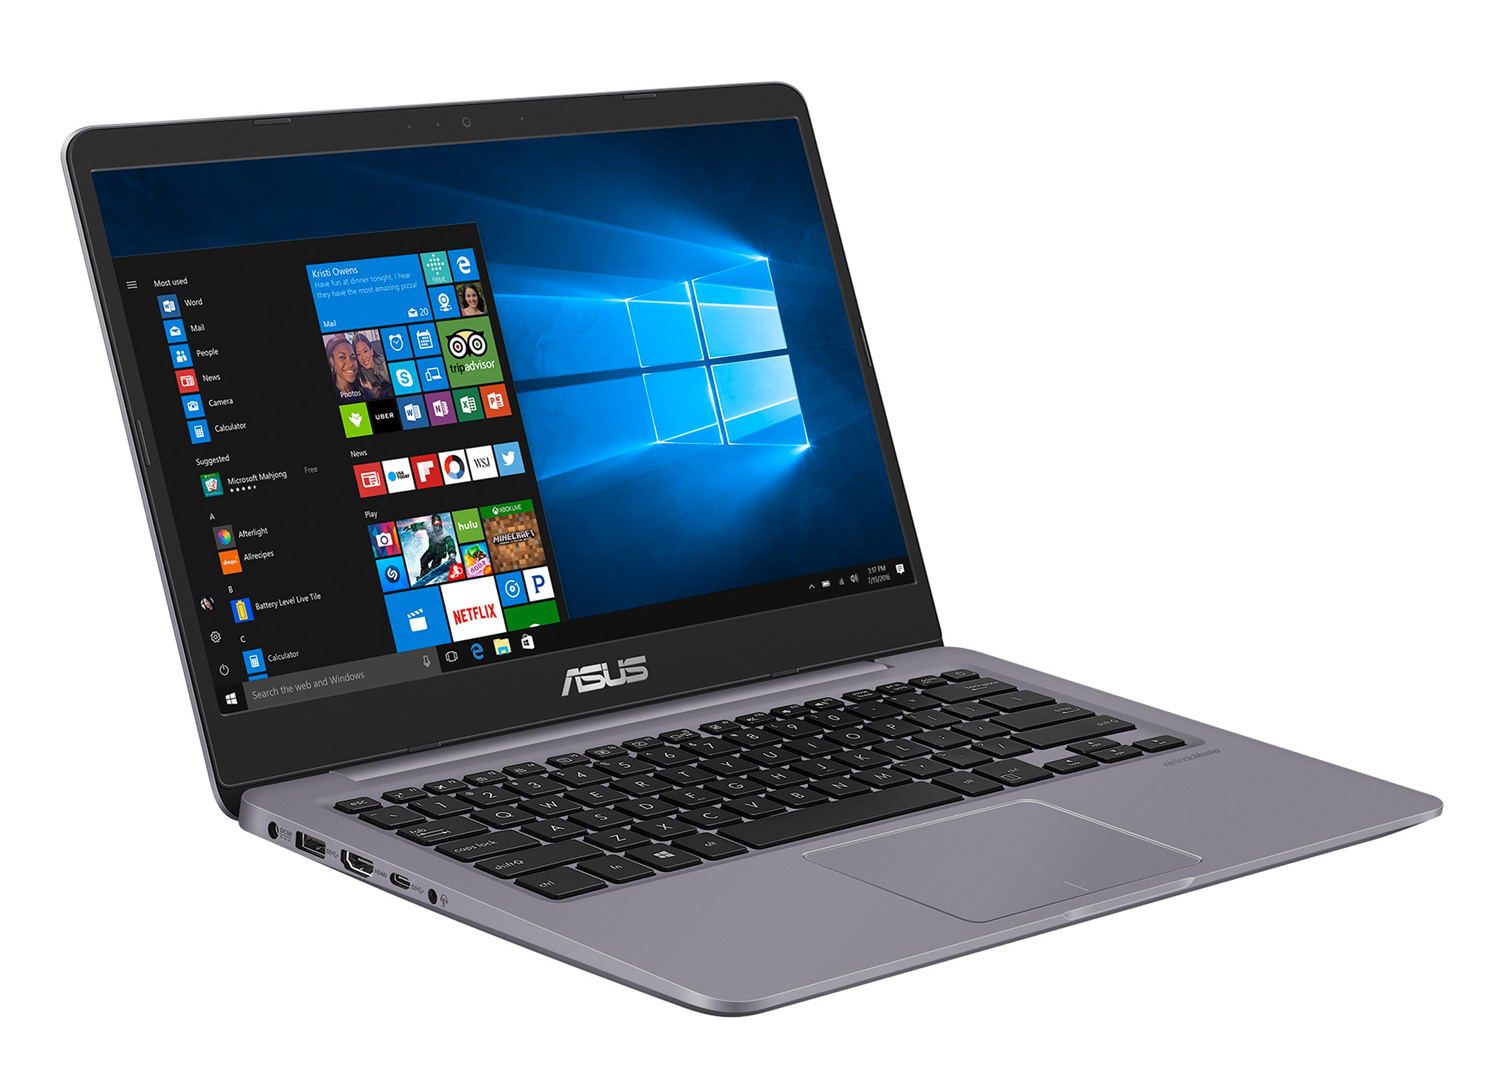 asus vivobook s14 s410un eb015t achetez au meilleur prix. Black Bedroom Furniture Sets. Home Design Ideas